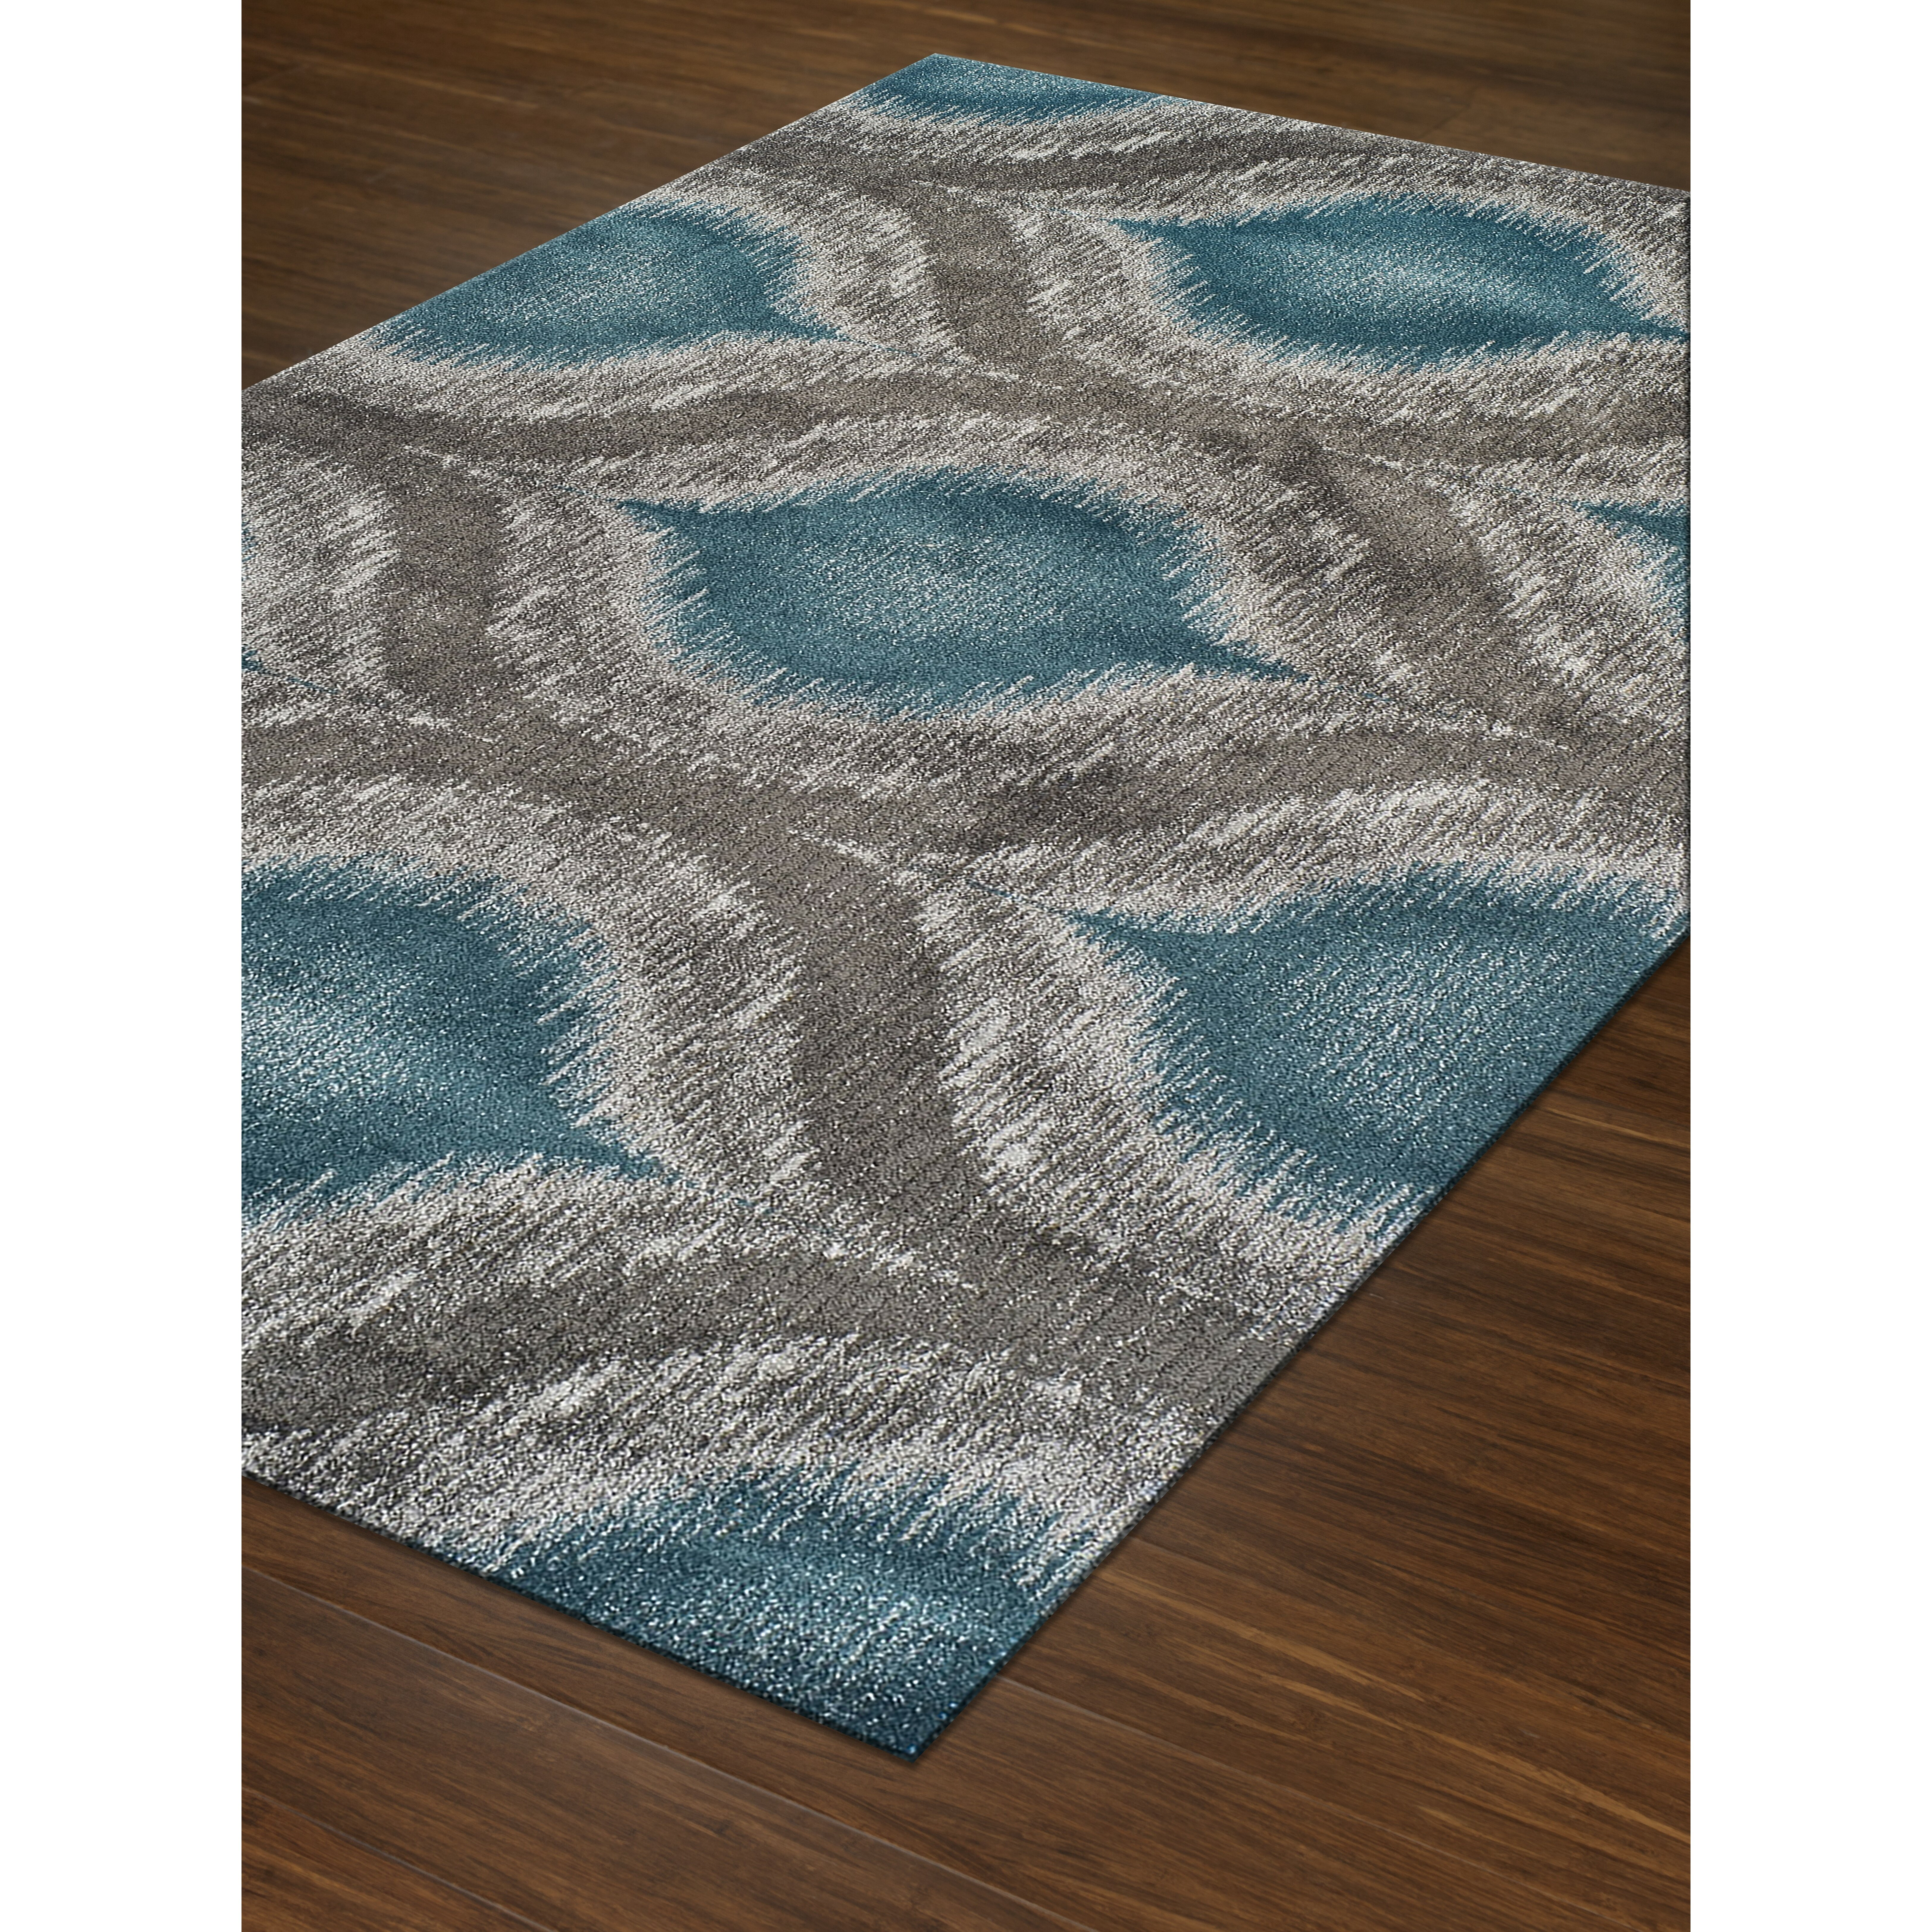 Dalyn rug co modern greys dalyn teal area rug reviews for 10x10 living room rugs